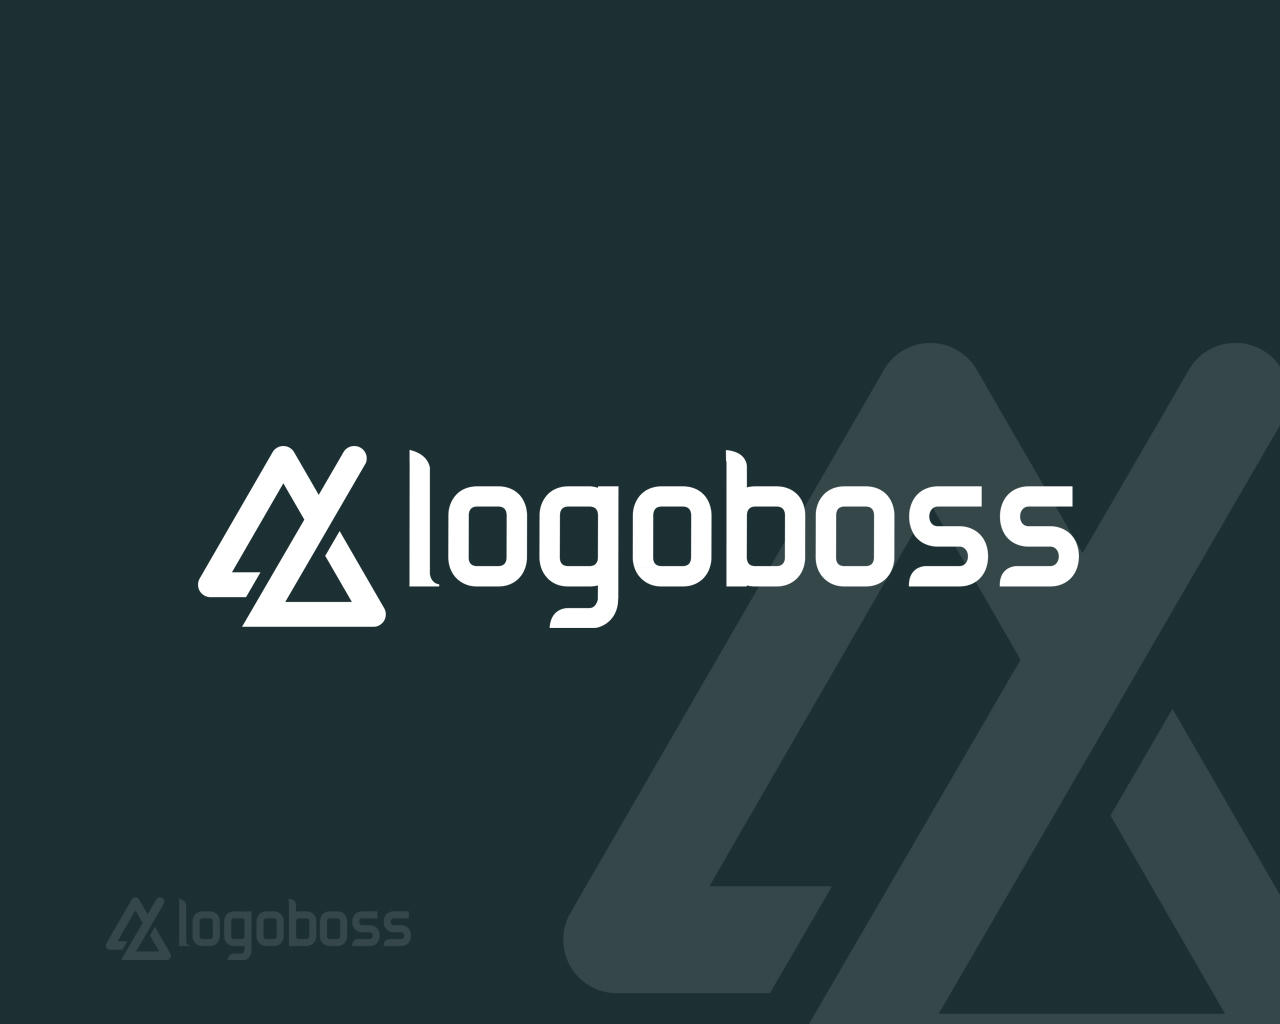 Professional Logo Design With Unlimited Concepts by logoboss - 99840